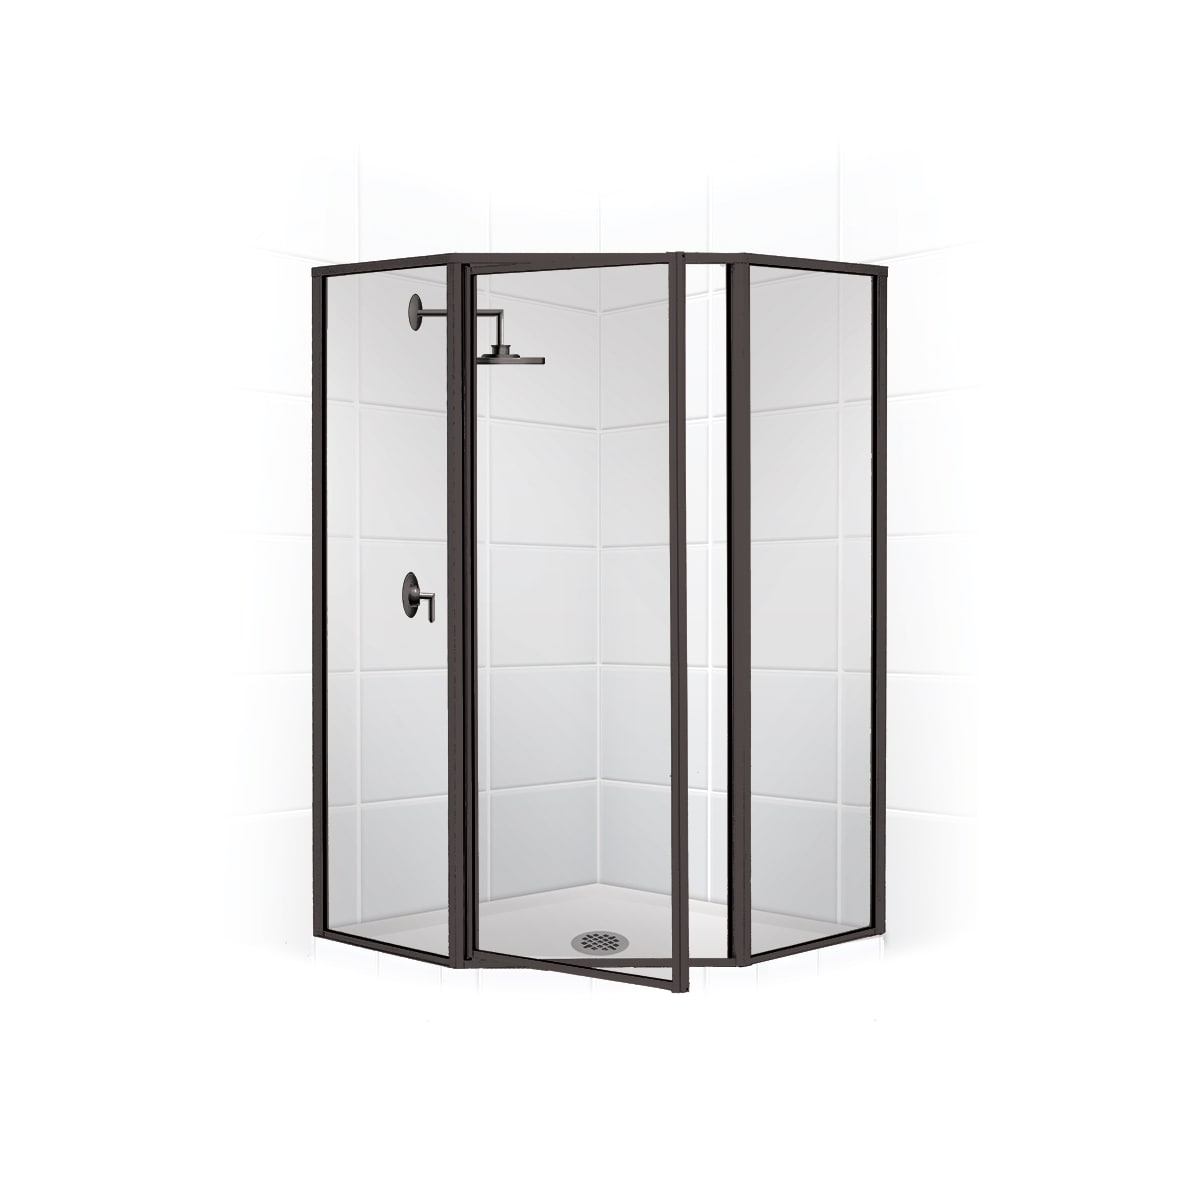 Coastal Shower Doors Nl17251770 C